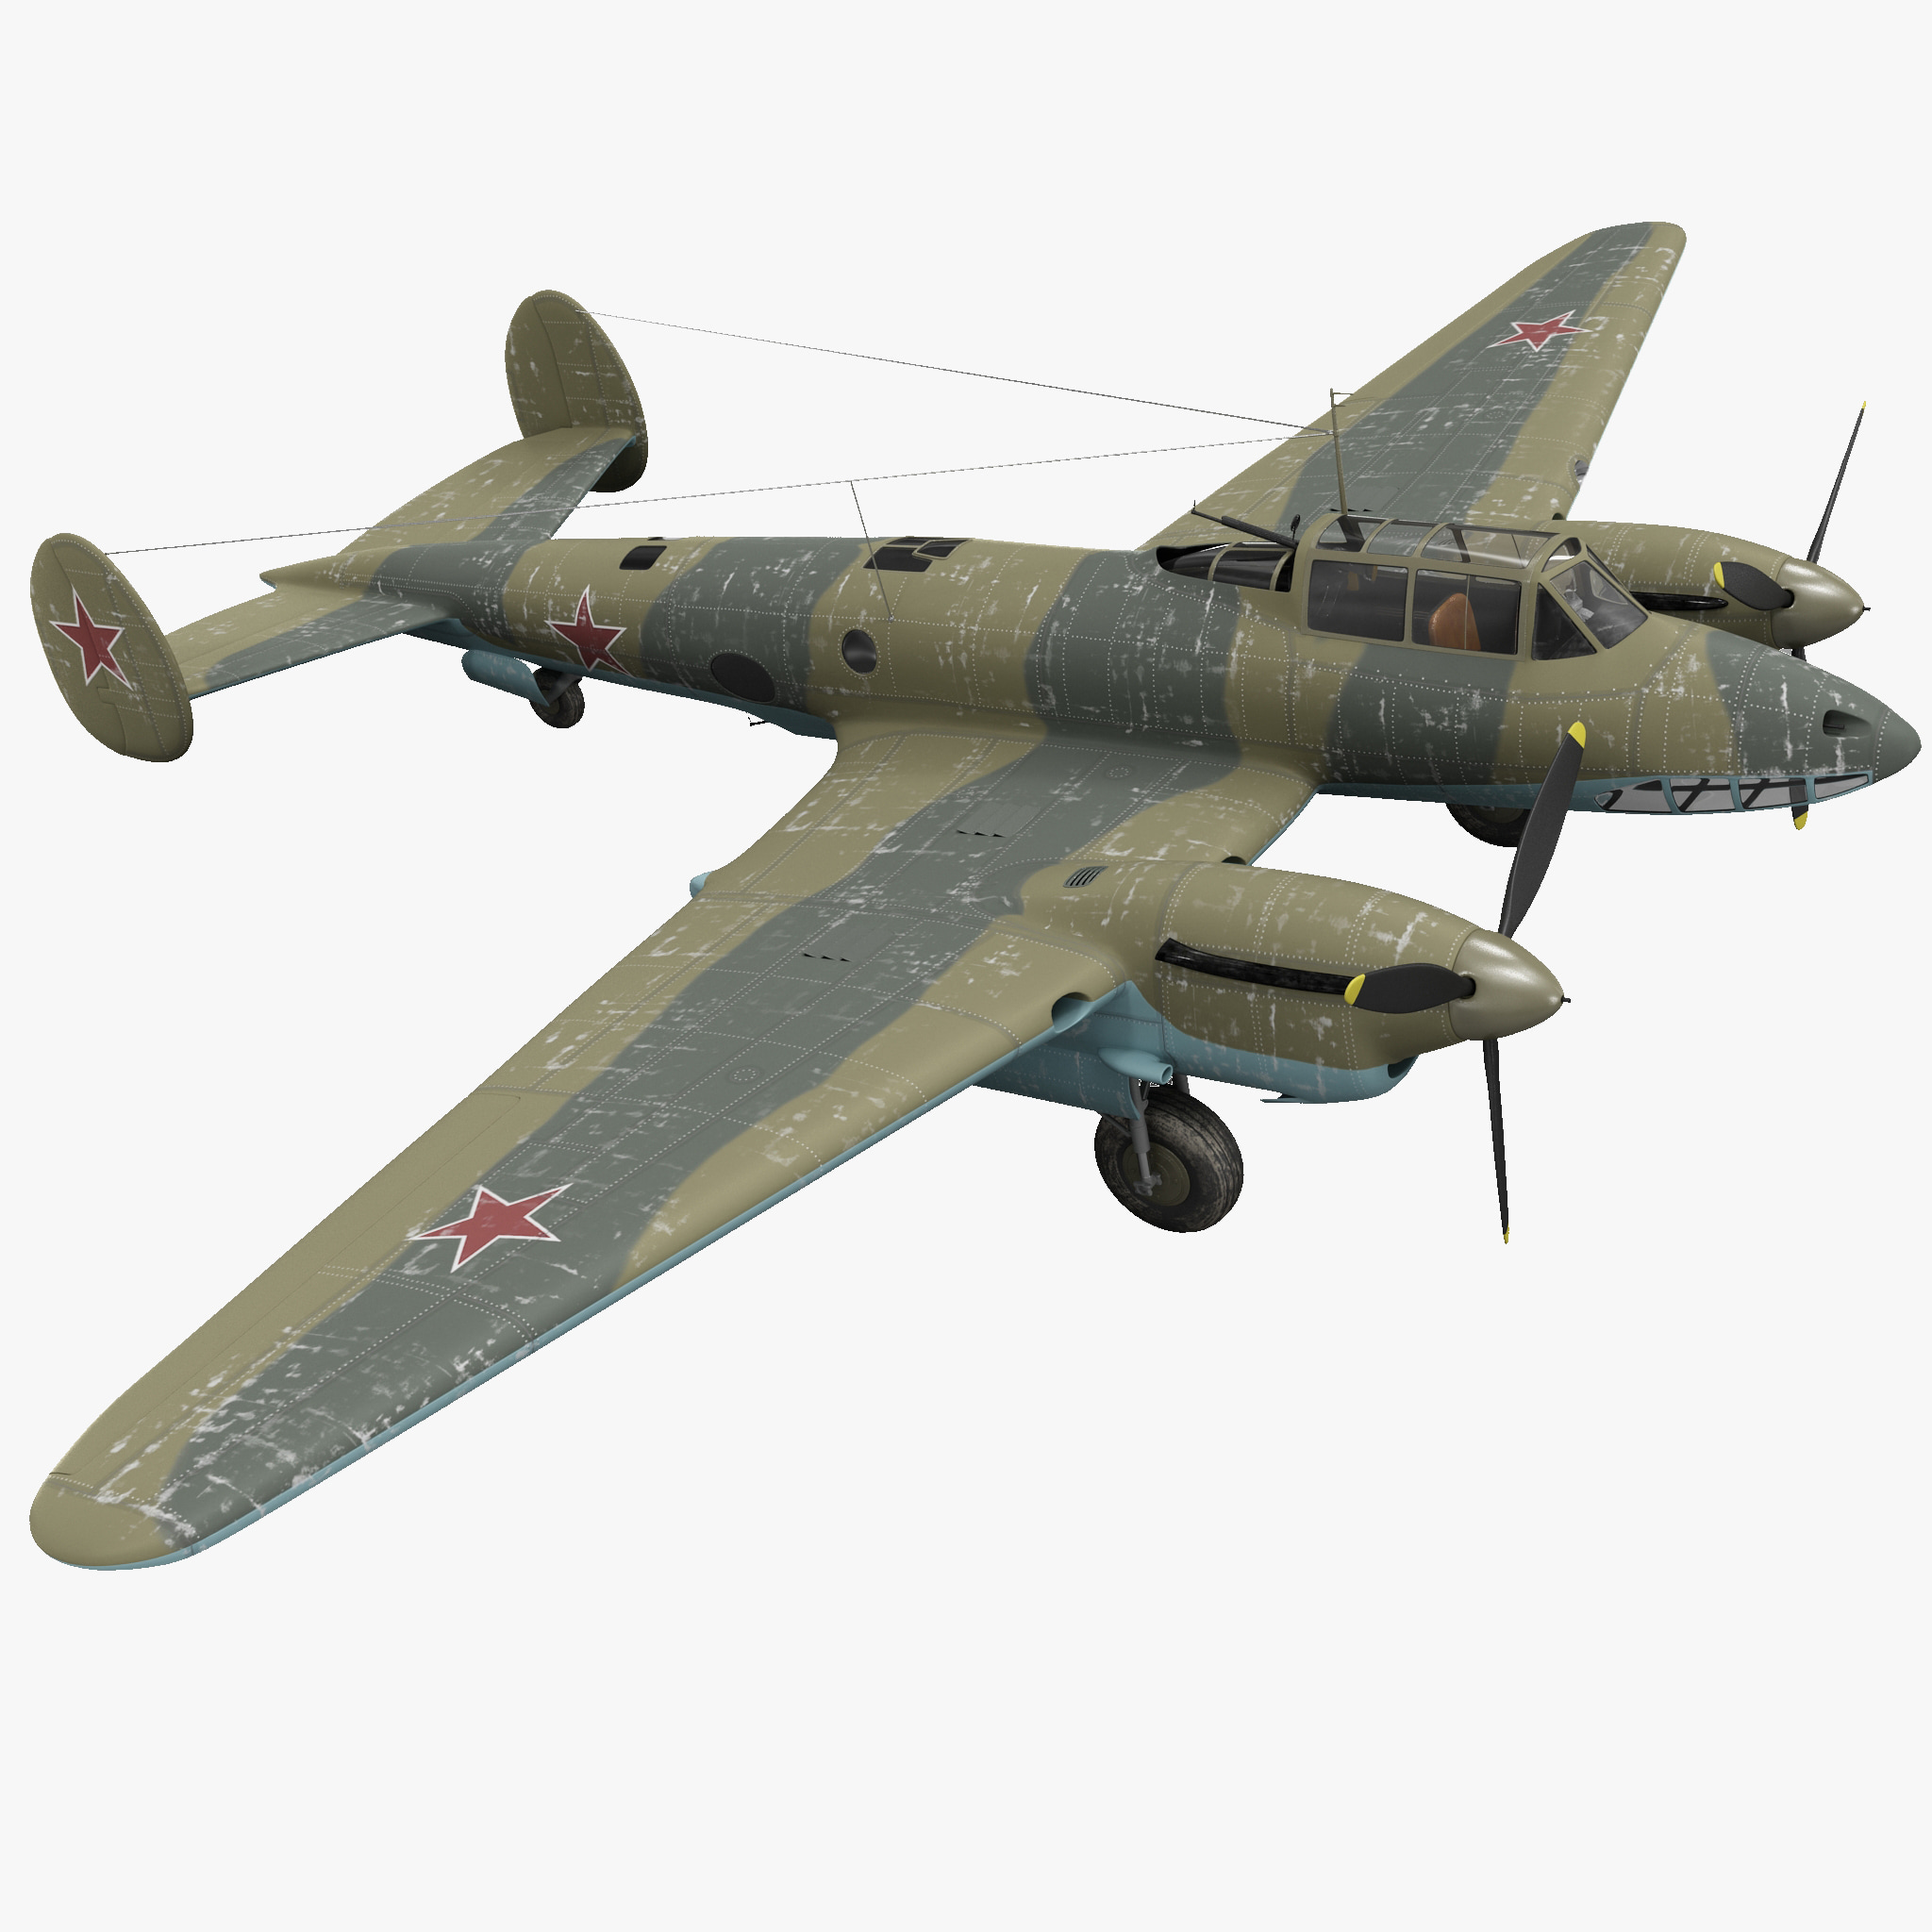 Petlyakov Pe-2I Russian World War II Bomber_267.jpg